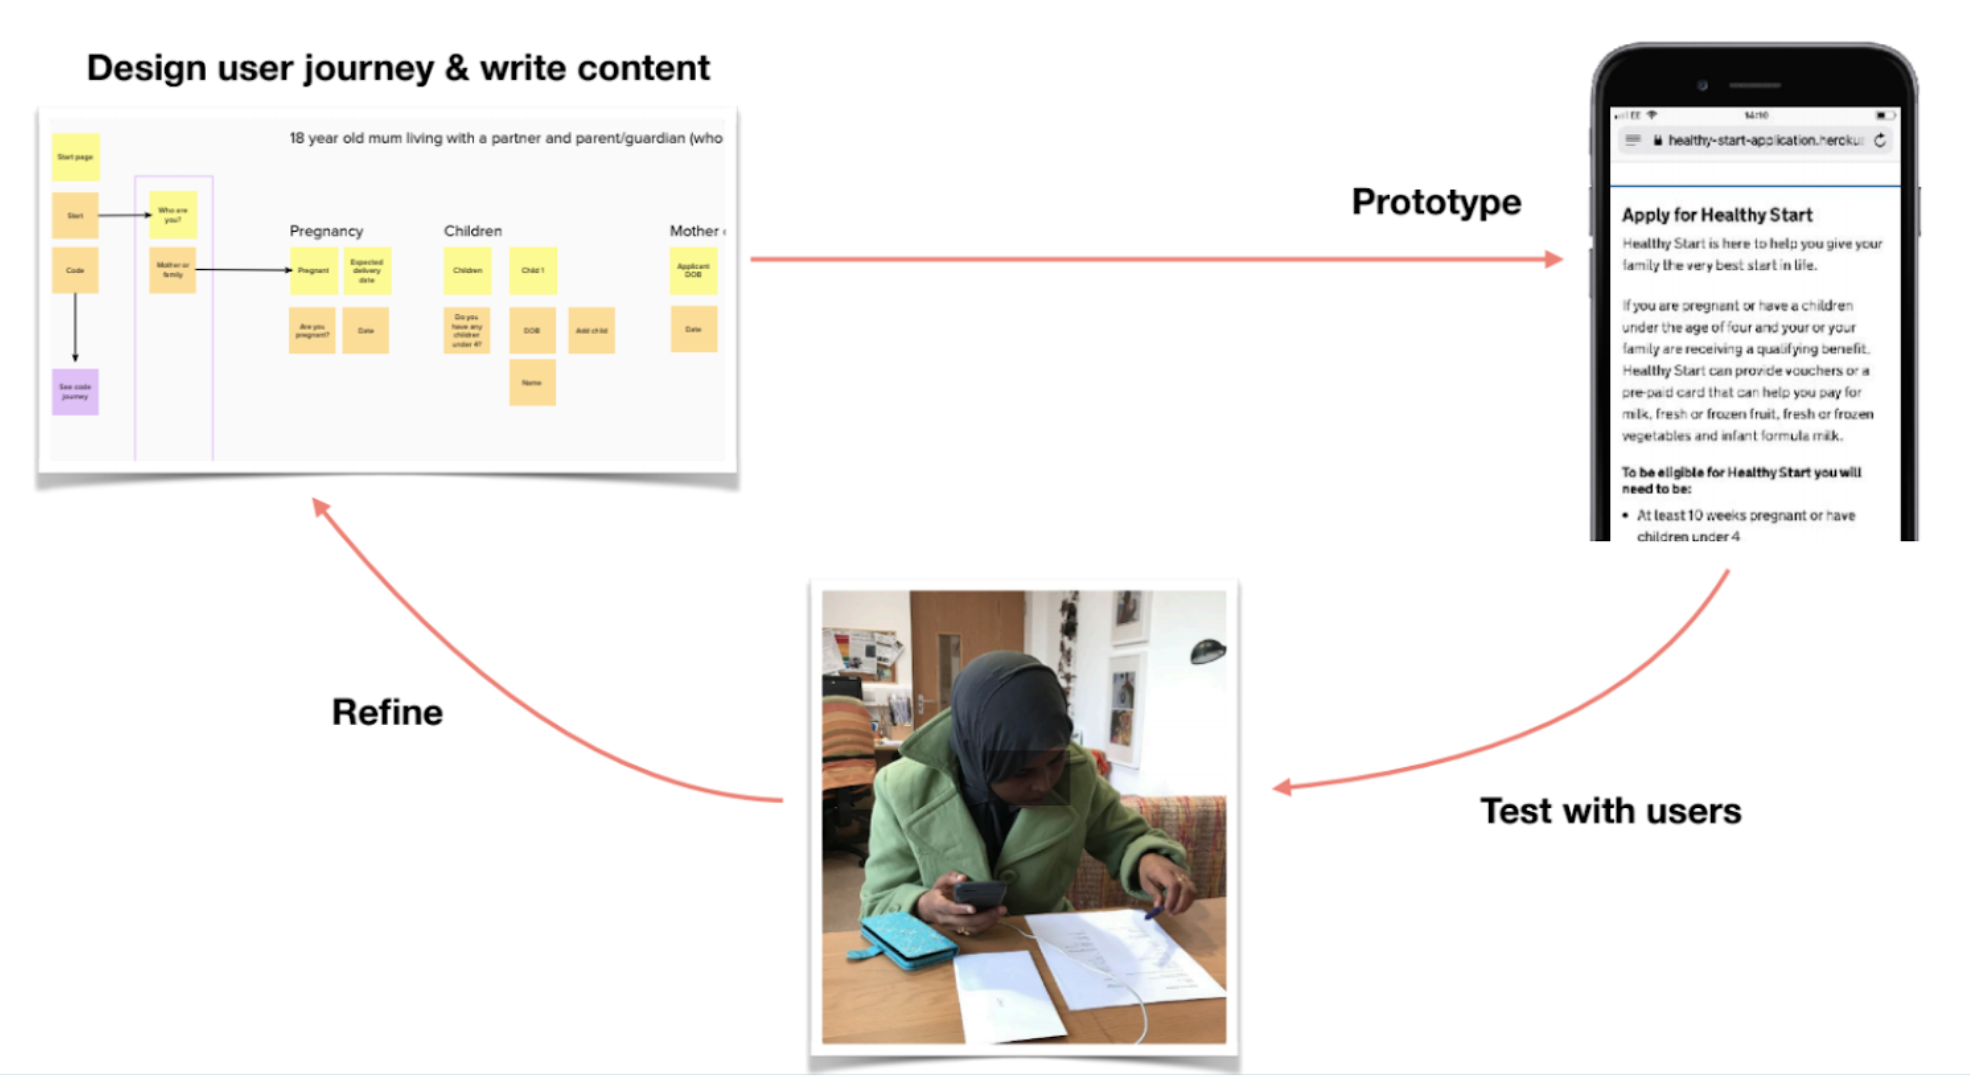 The content design on the 'Apply' journey went through six rounds of iteration.